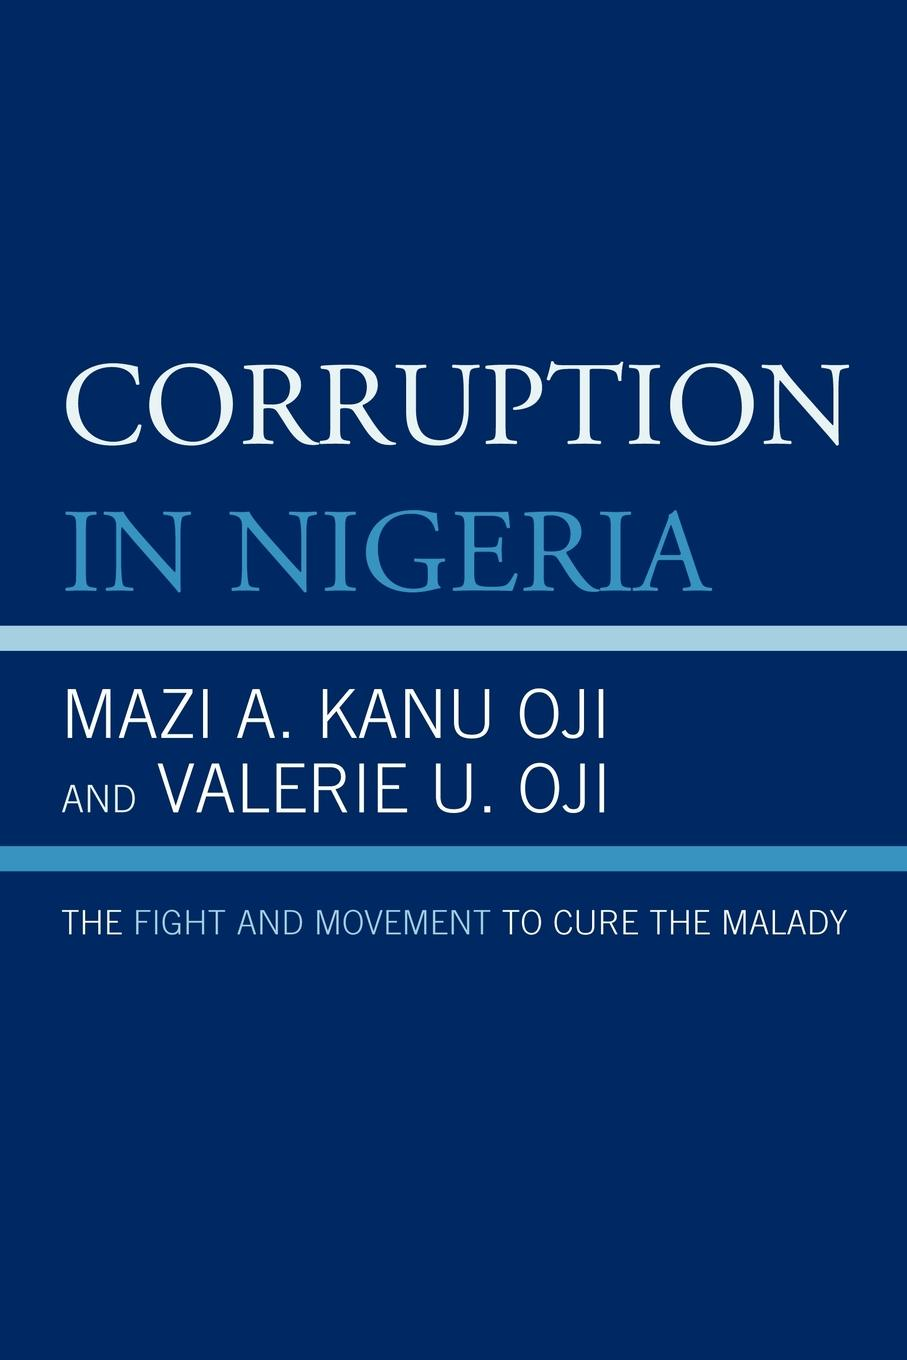 Corruption in Nigeria The Fight and Movement to Cure the Malady